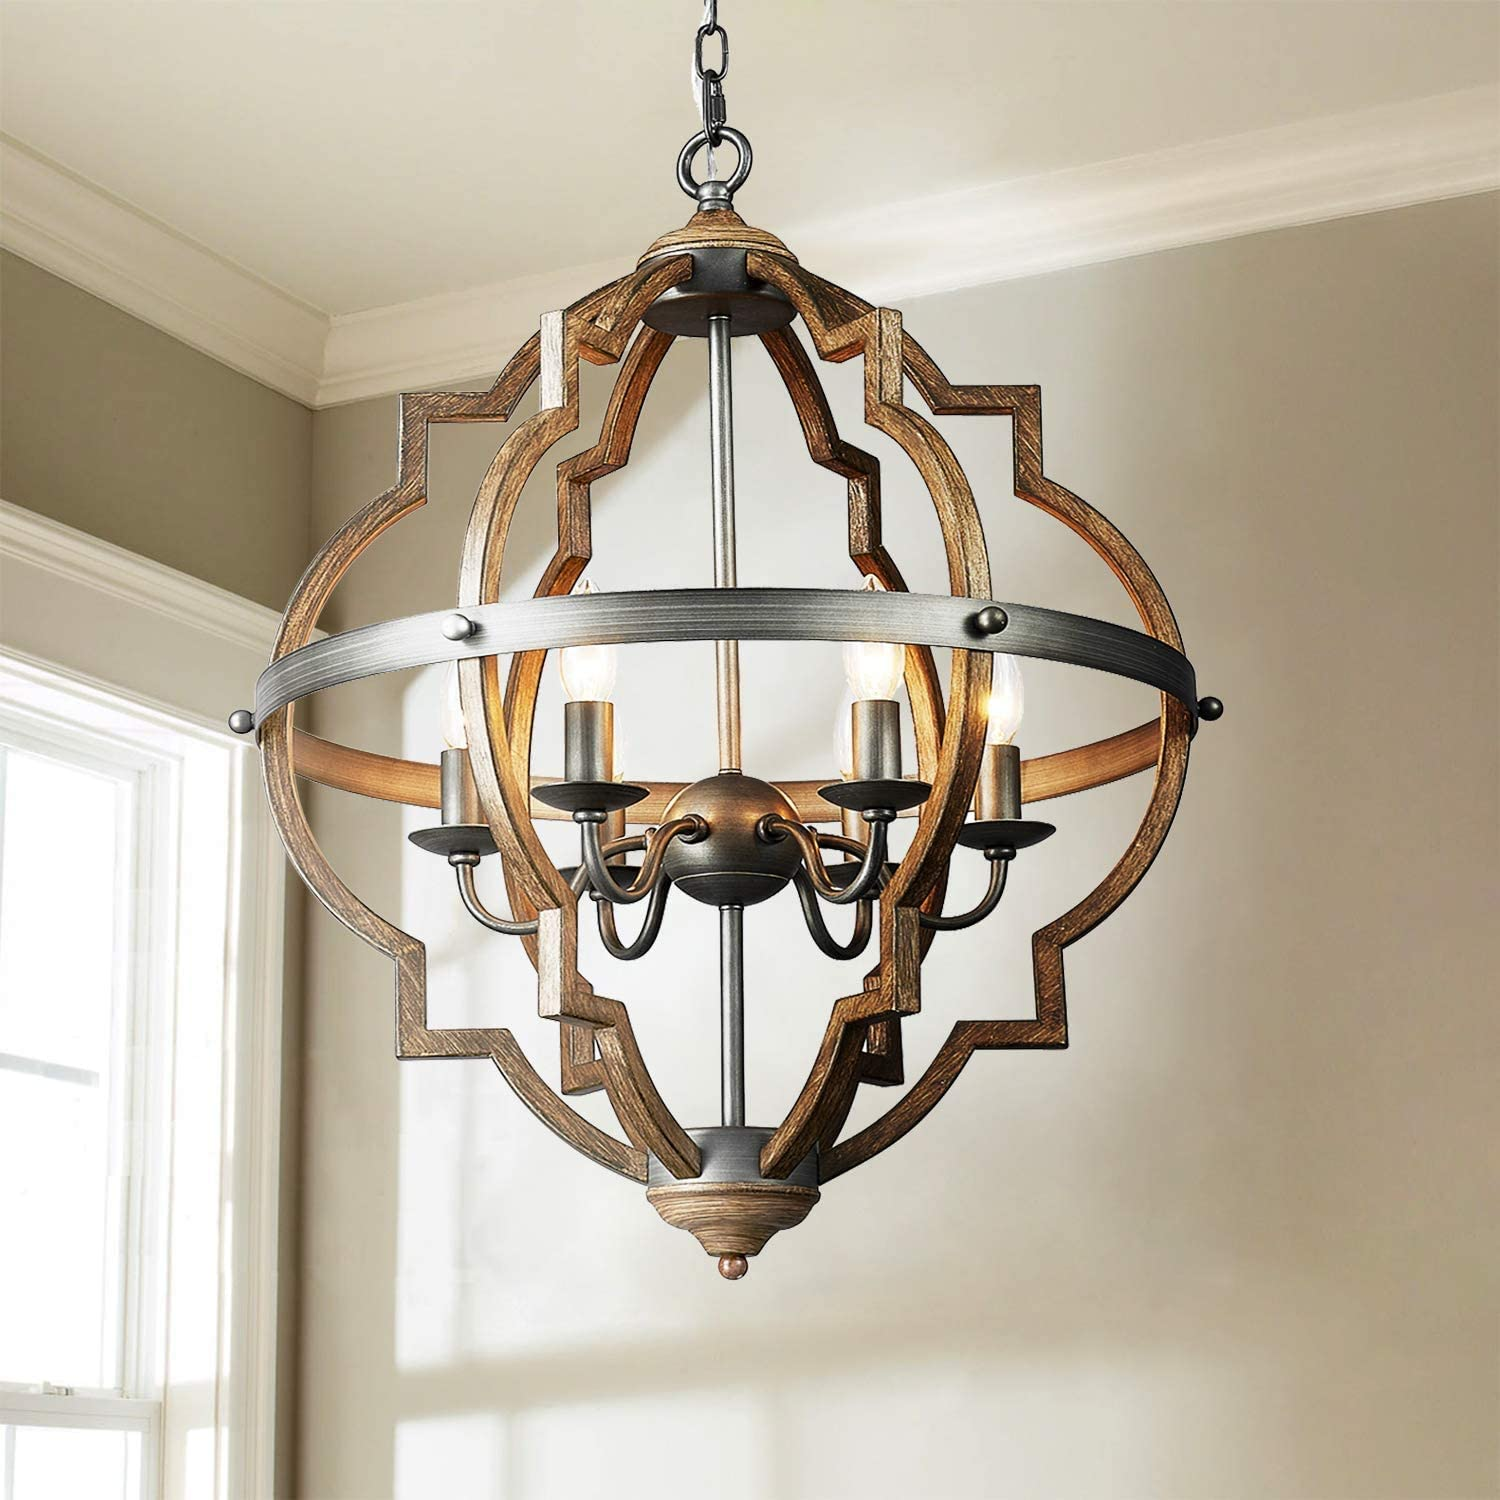 Saint Mossi 6 Lights Stardust Distressed Oak Finish Farmhouse Chandelier Light Fixture Rustic Globe Chandelier Style Globe Pendant Light Farmhouse Pendant Light Fixtures H29 X D21 Chain Adjustable